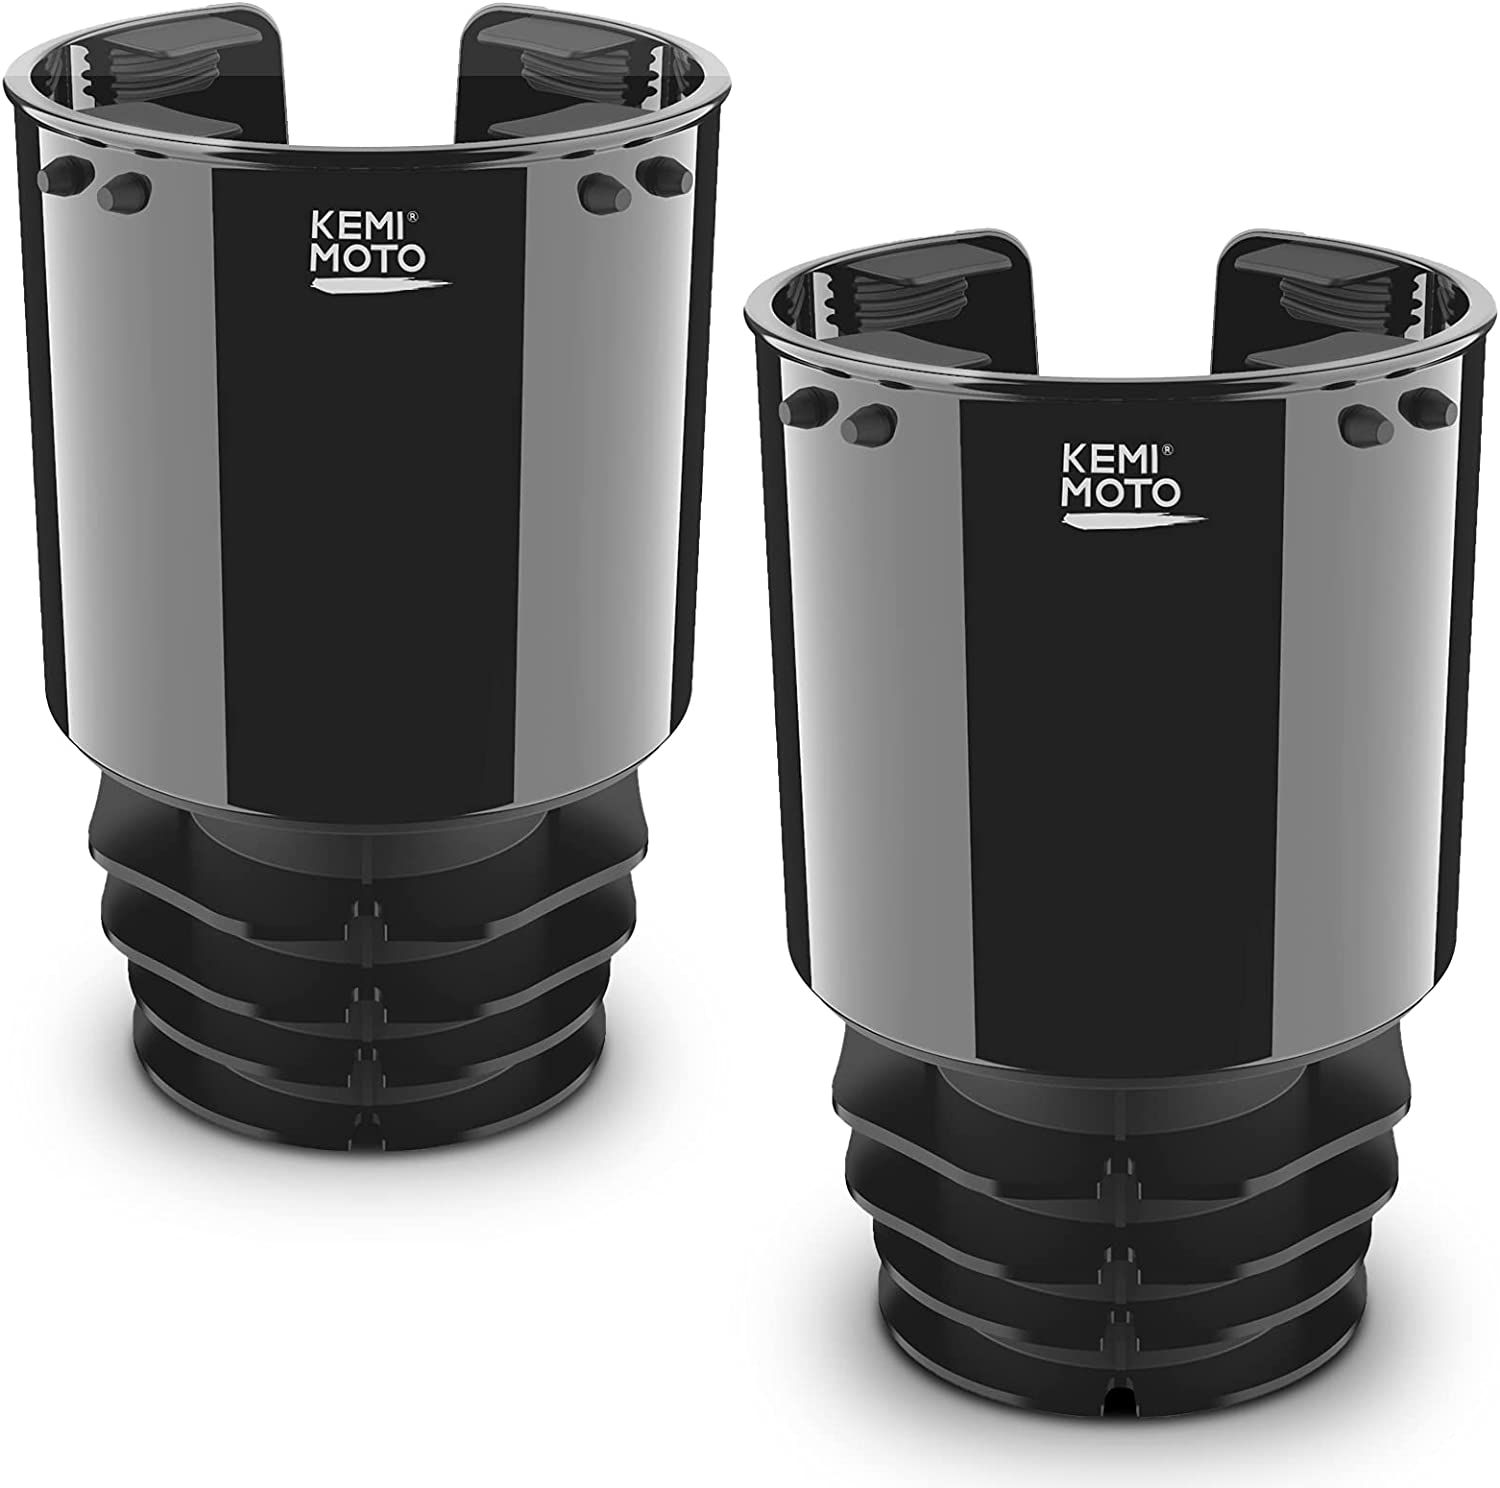 kemimoto Cup Holders for Austin Mall 18-40 Holder Bottles We OFFer at cheap prices Large OZ Adap